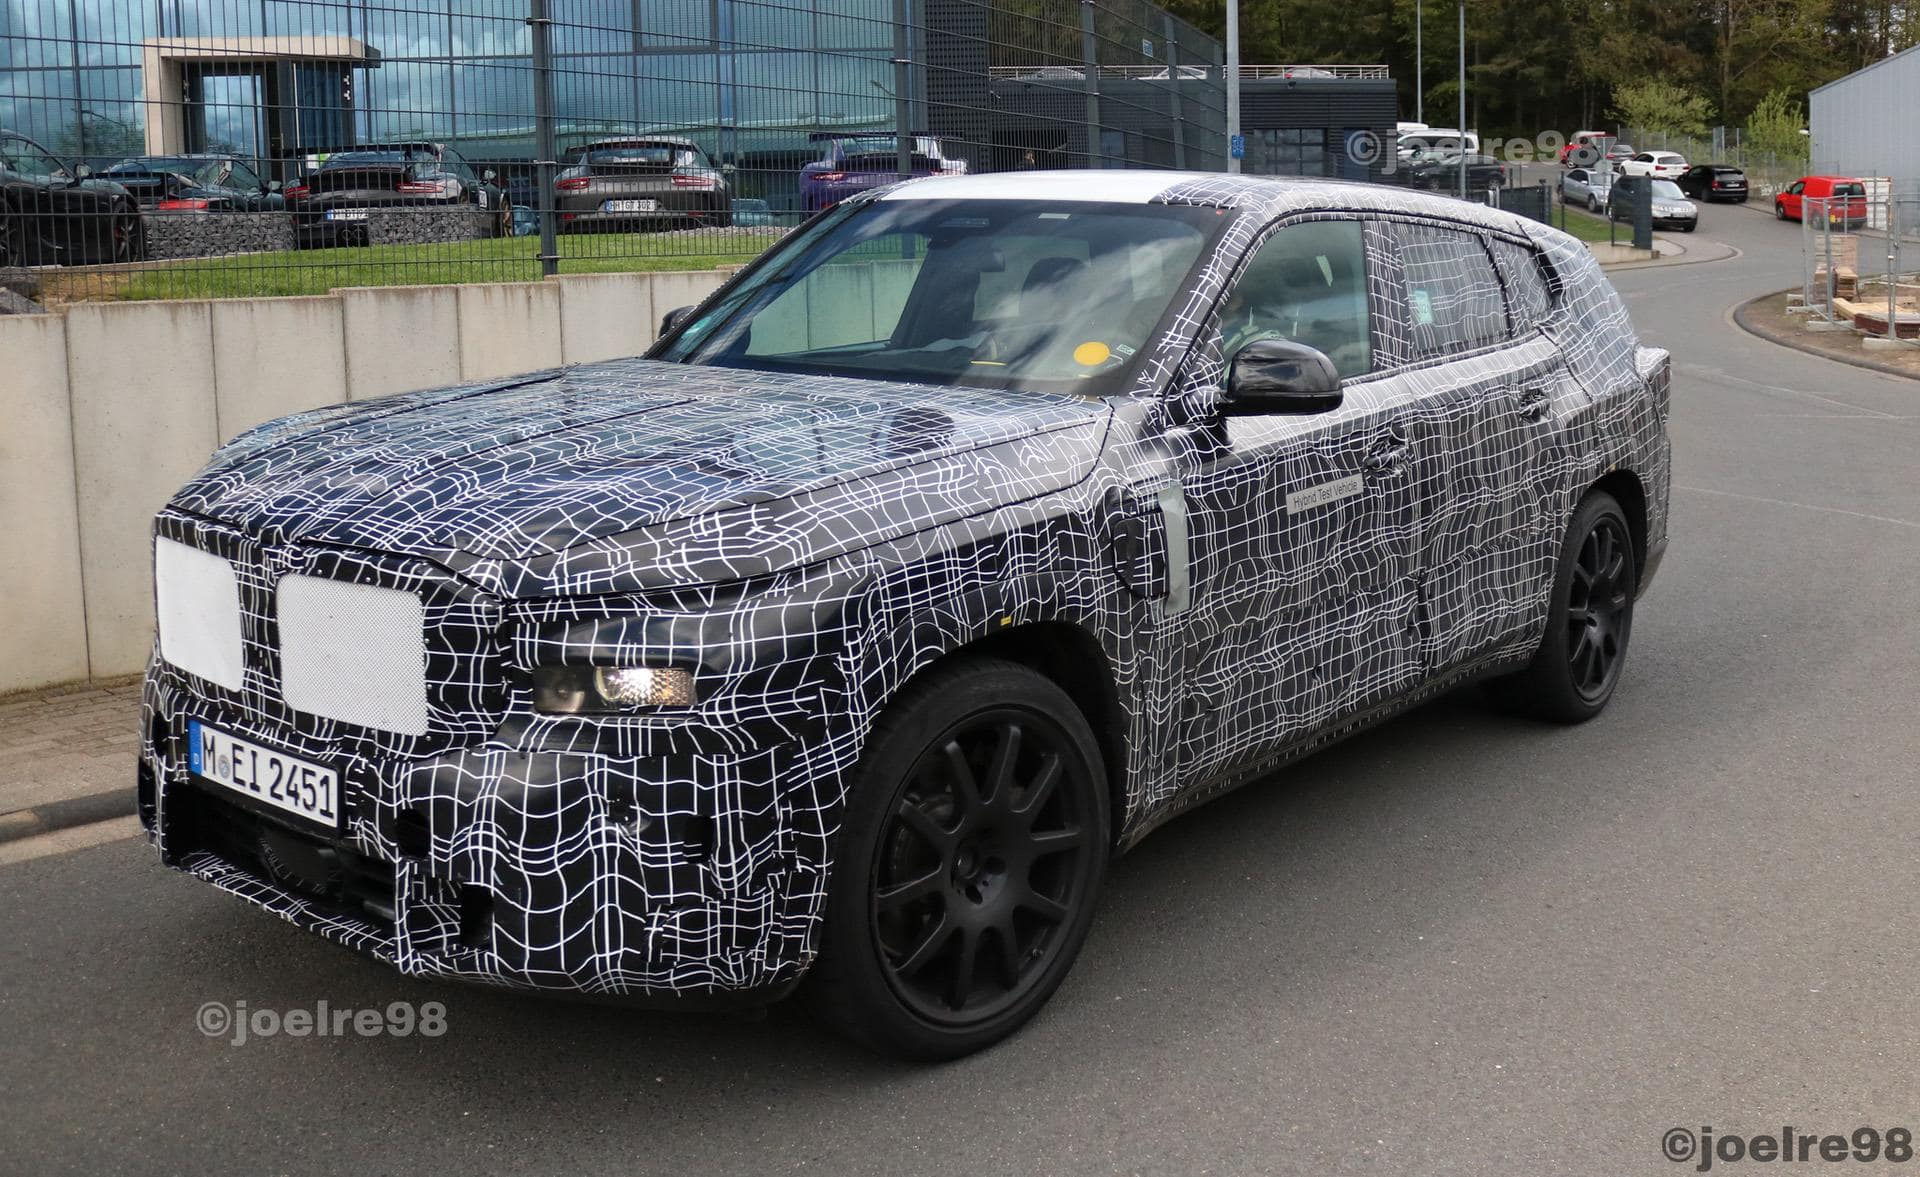 SPIED: BMW iX1, XM And More Are Out Testing in Camouflage